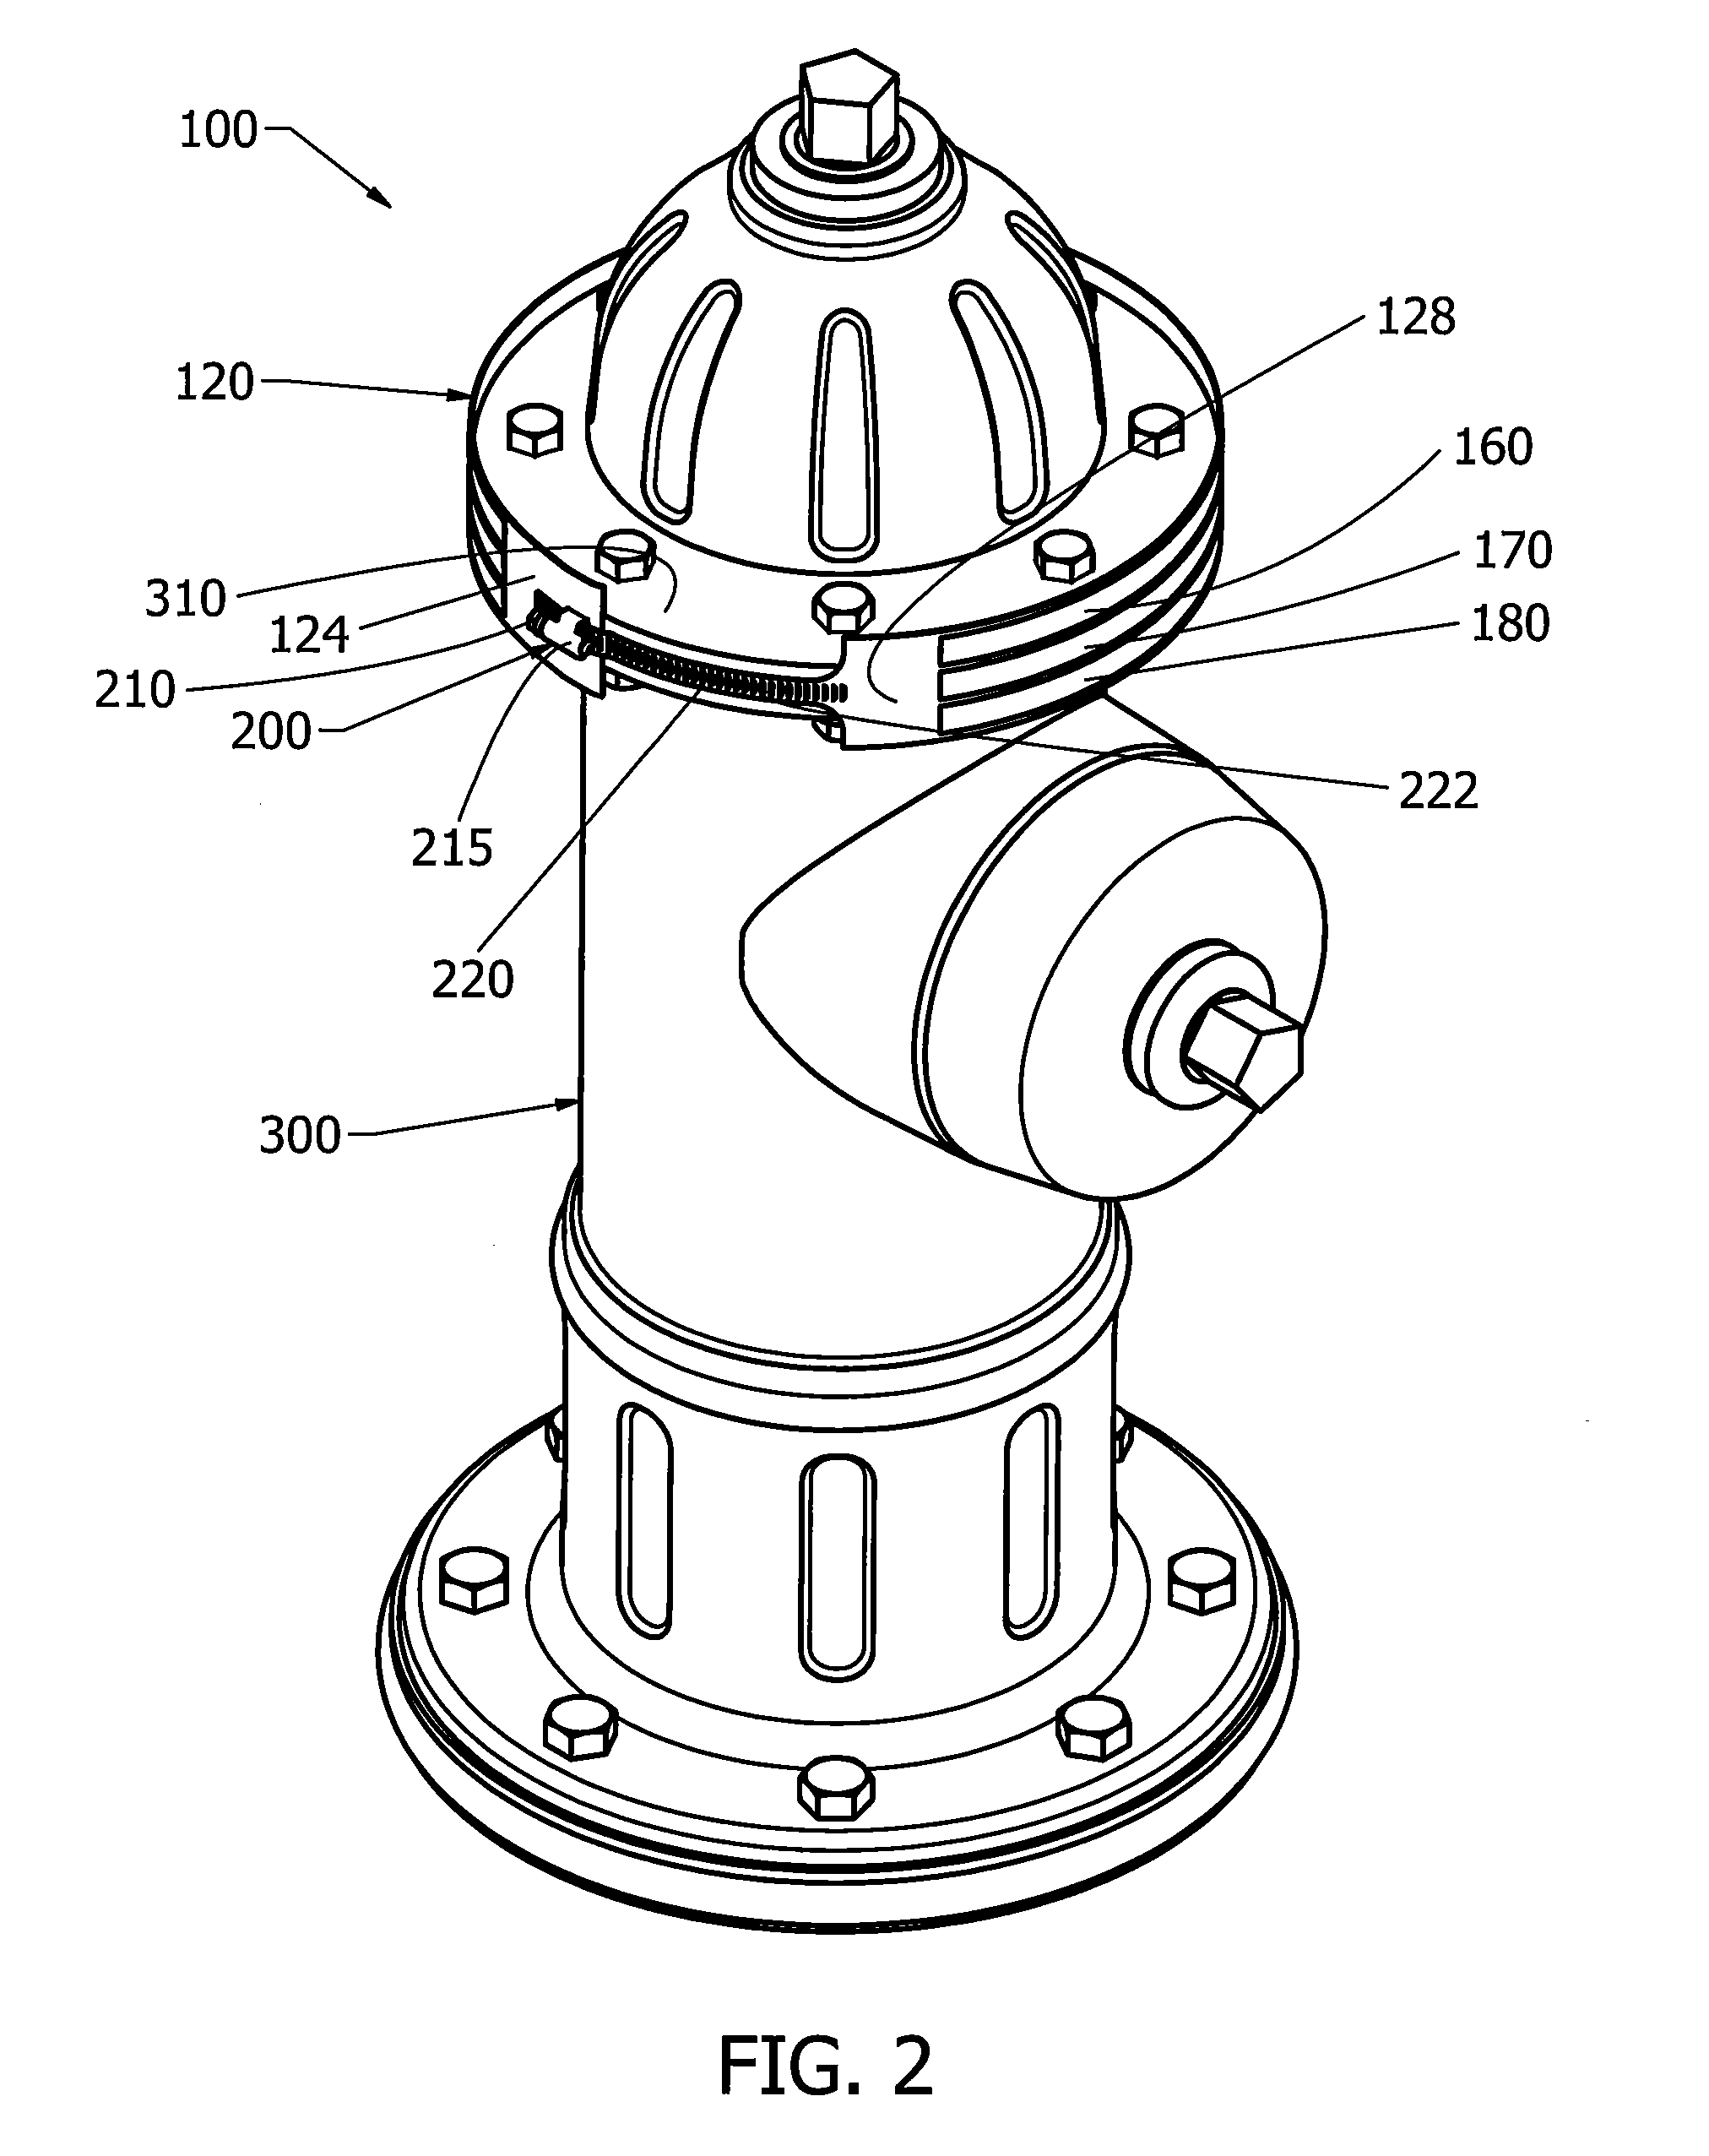 fire hydrant coloring pages fire hydrant coloring page coloring home hydrant pages fire coloring